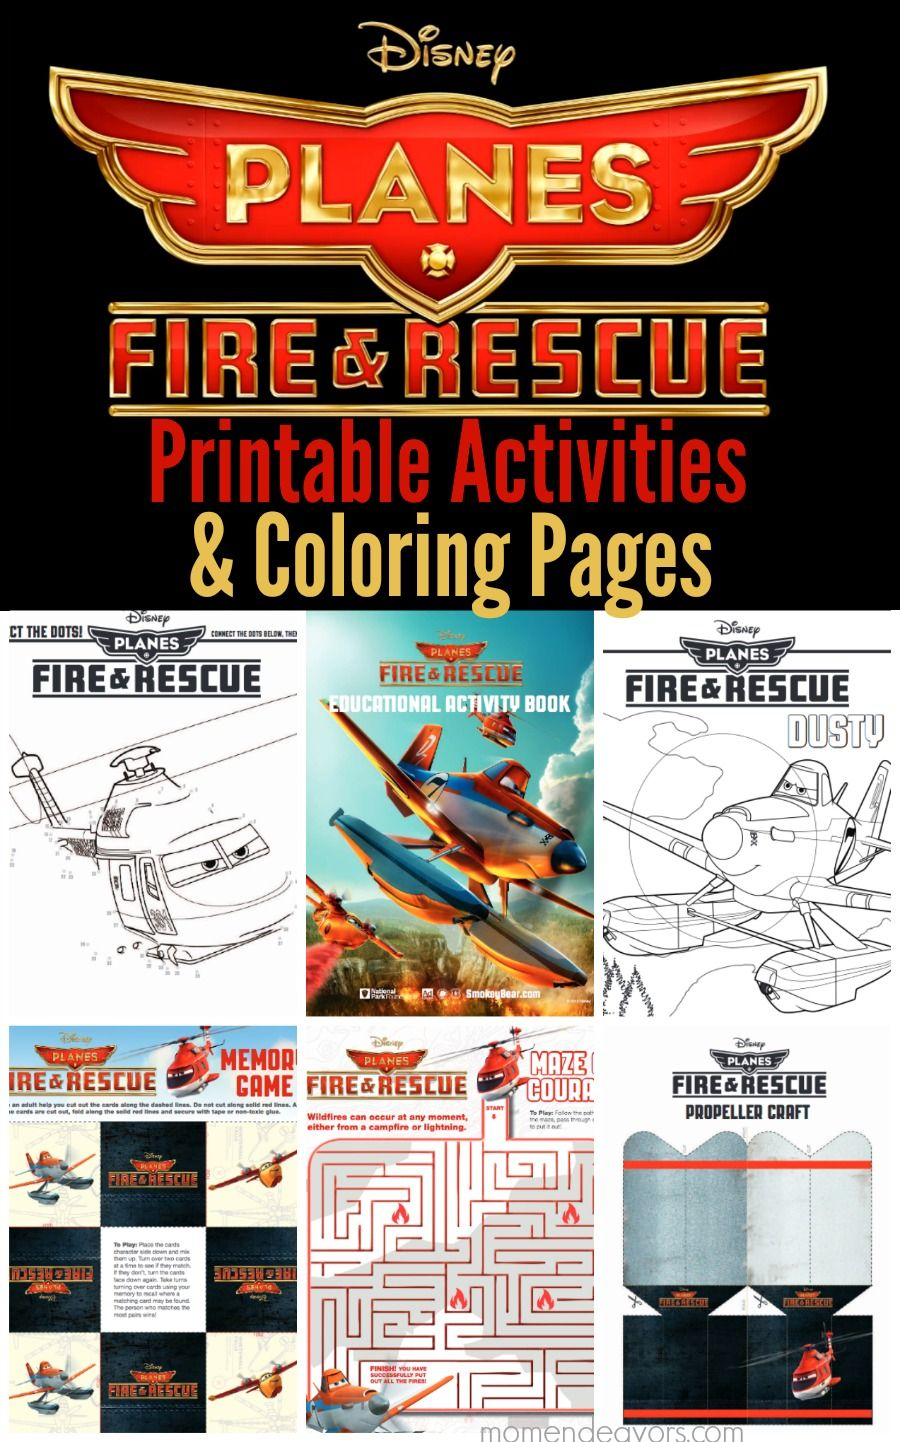 Disney Planes Fire Rescue Printable Activities Coloring Pages